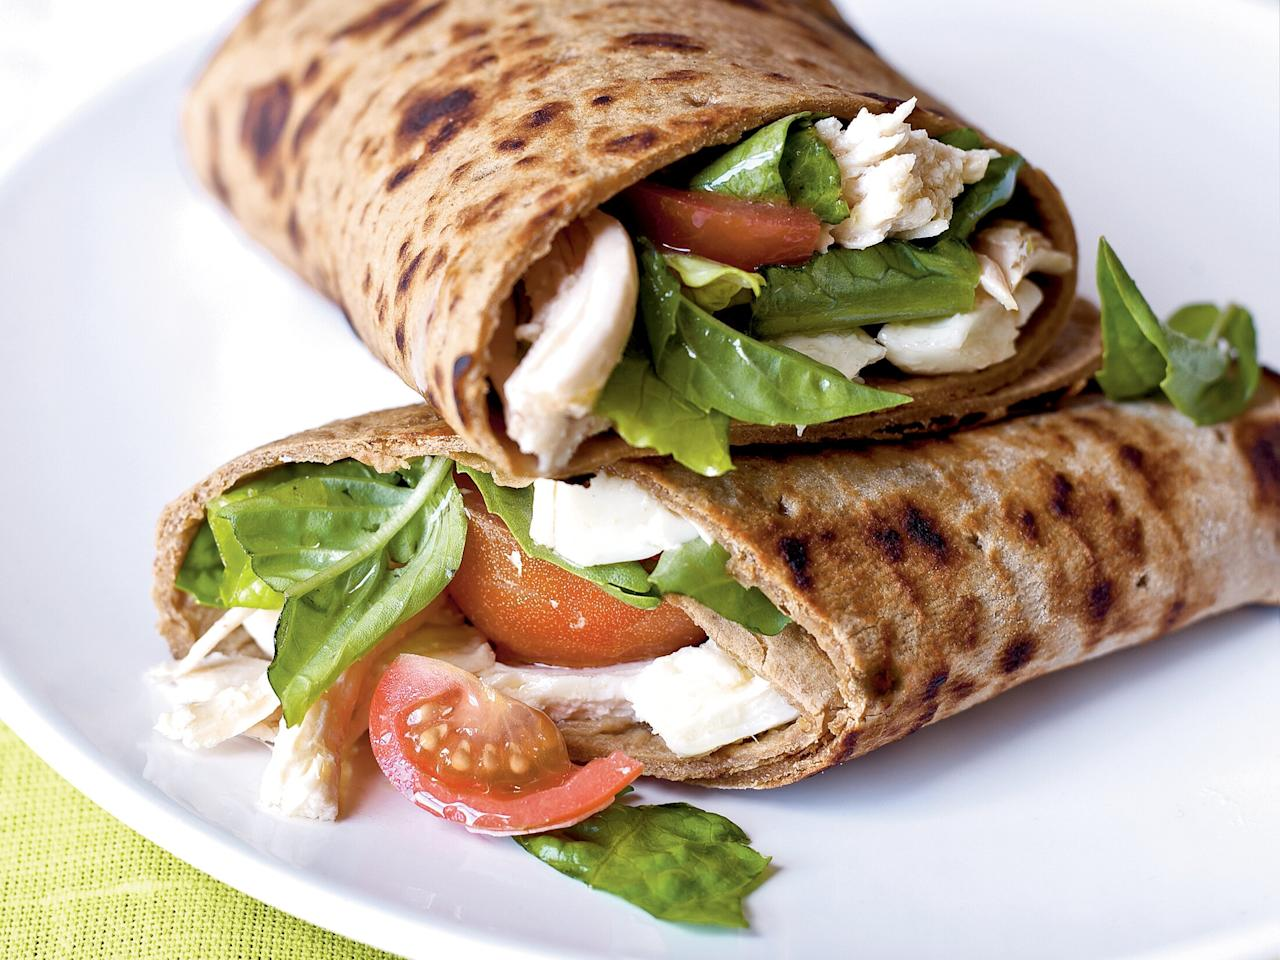 "<p>Pick up a rotisserie chicken and assemble this hearty sandwich for a quick and easy weeknight meal.</p> <p><a href=""https://www.myrecipes.com/recipe/caprese-wraps-with-chicken"">Caprese Wraps with Chicken Recipe</a></p>"